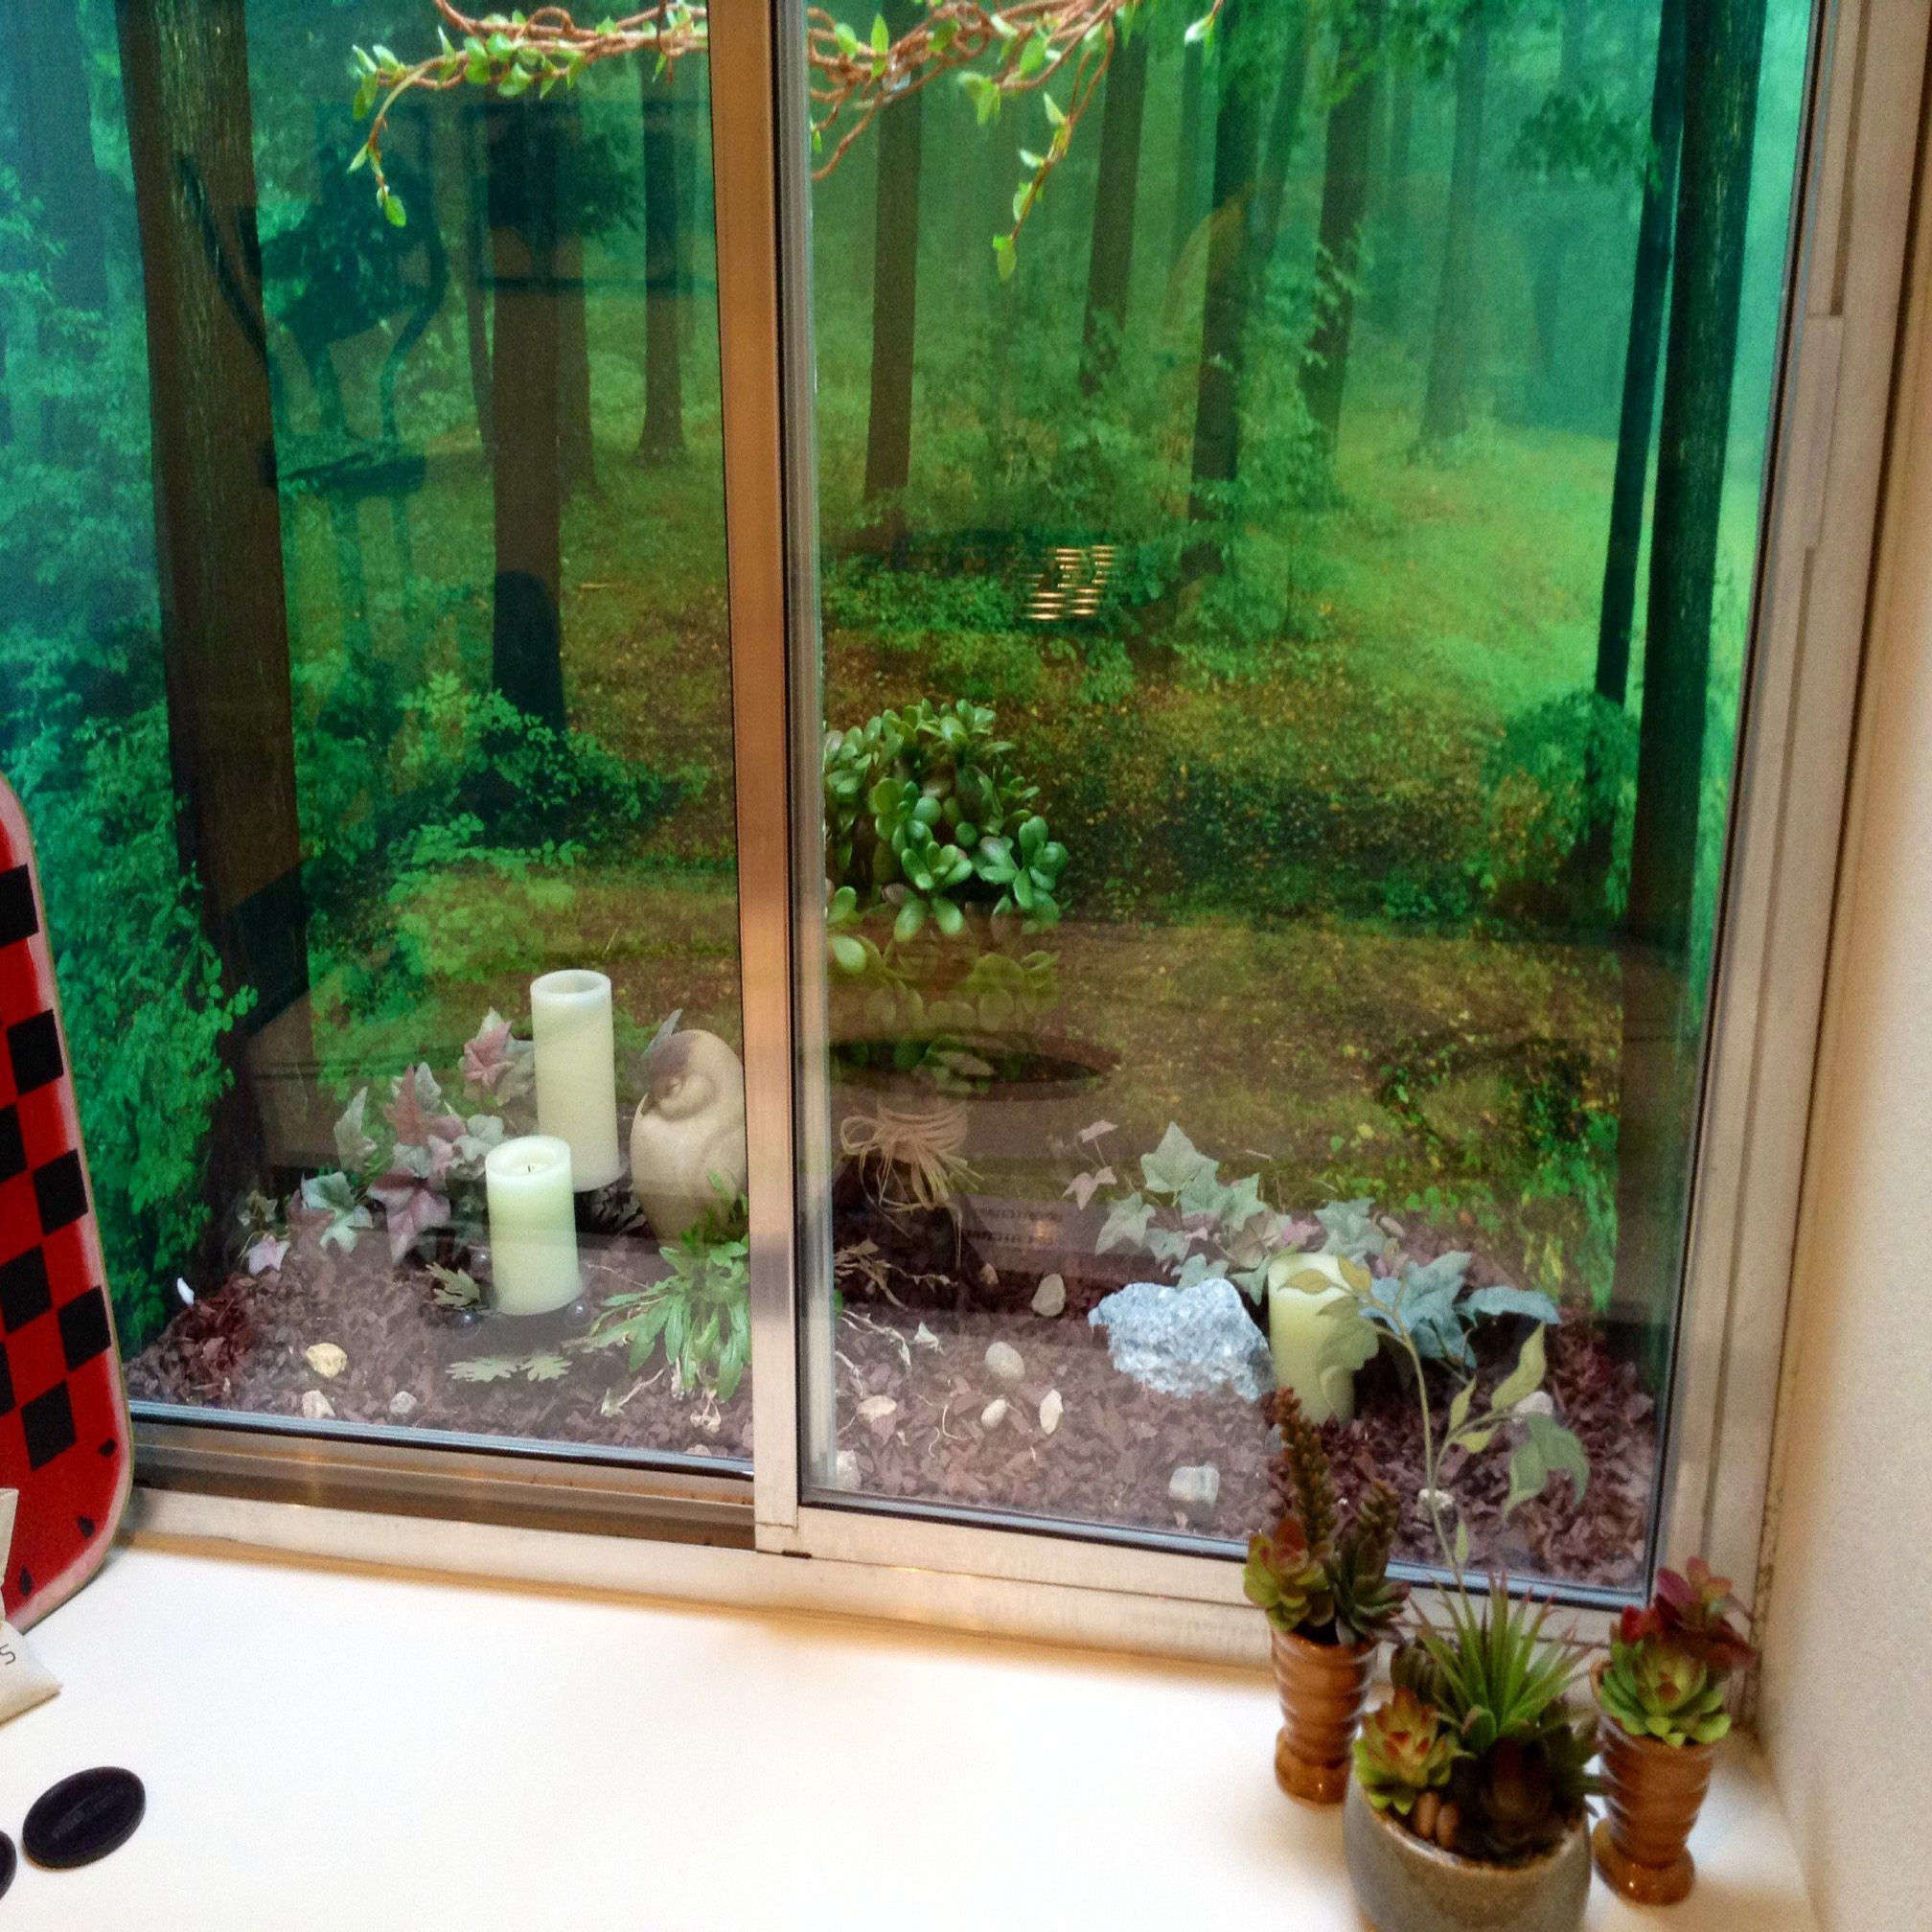 Window well decoration ideas  liven up a boring basement window well with our incredible scenes